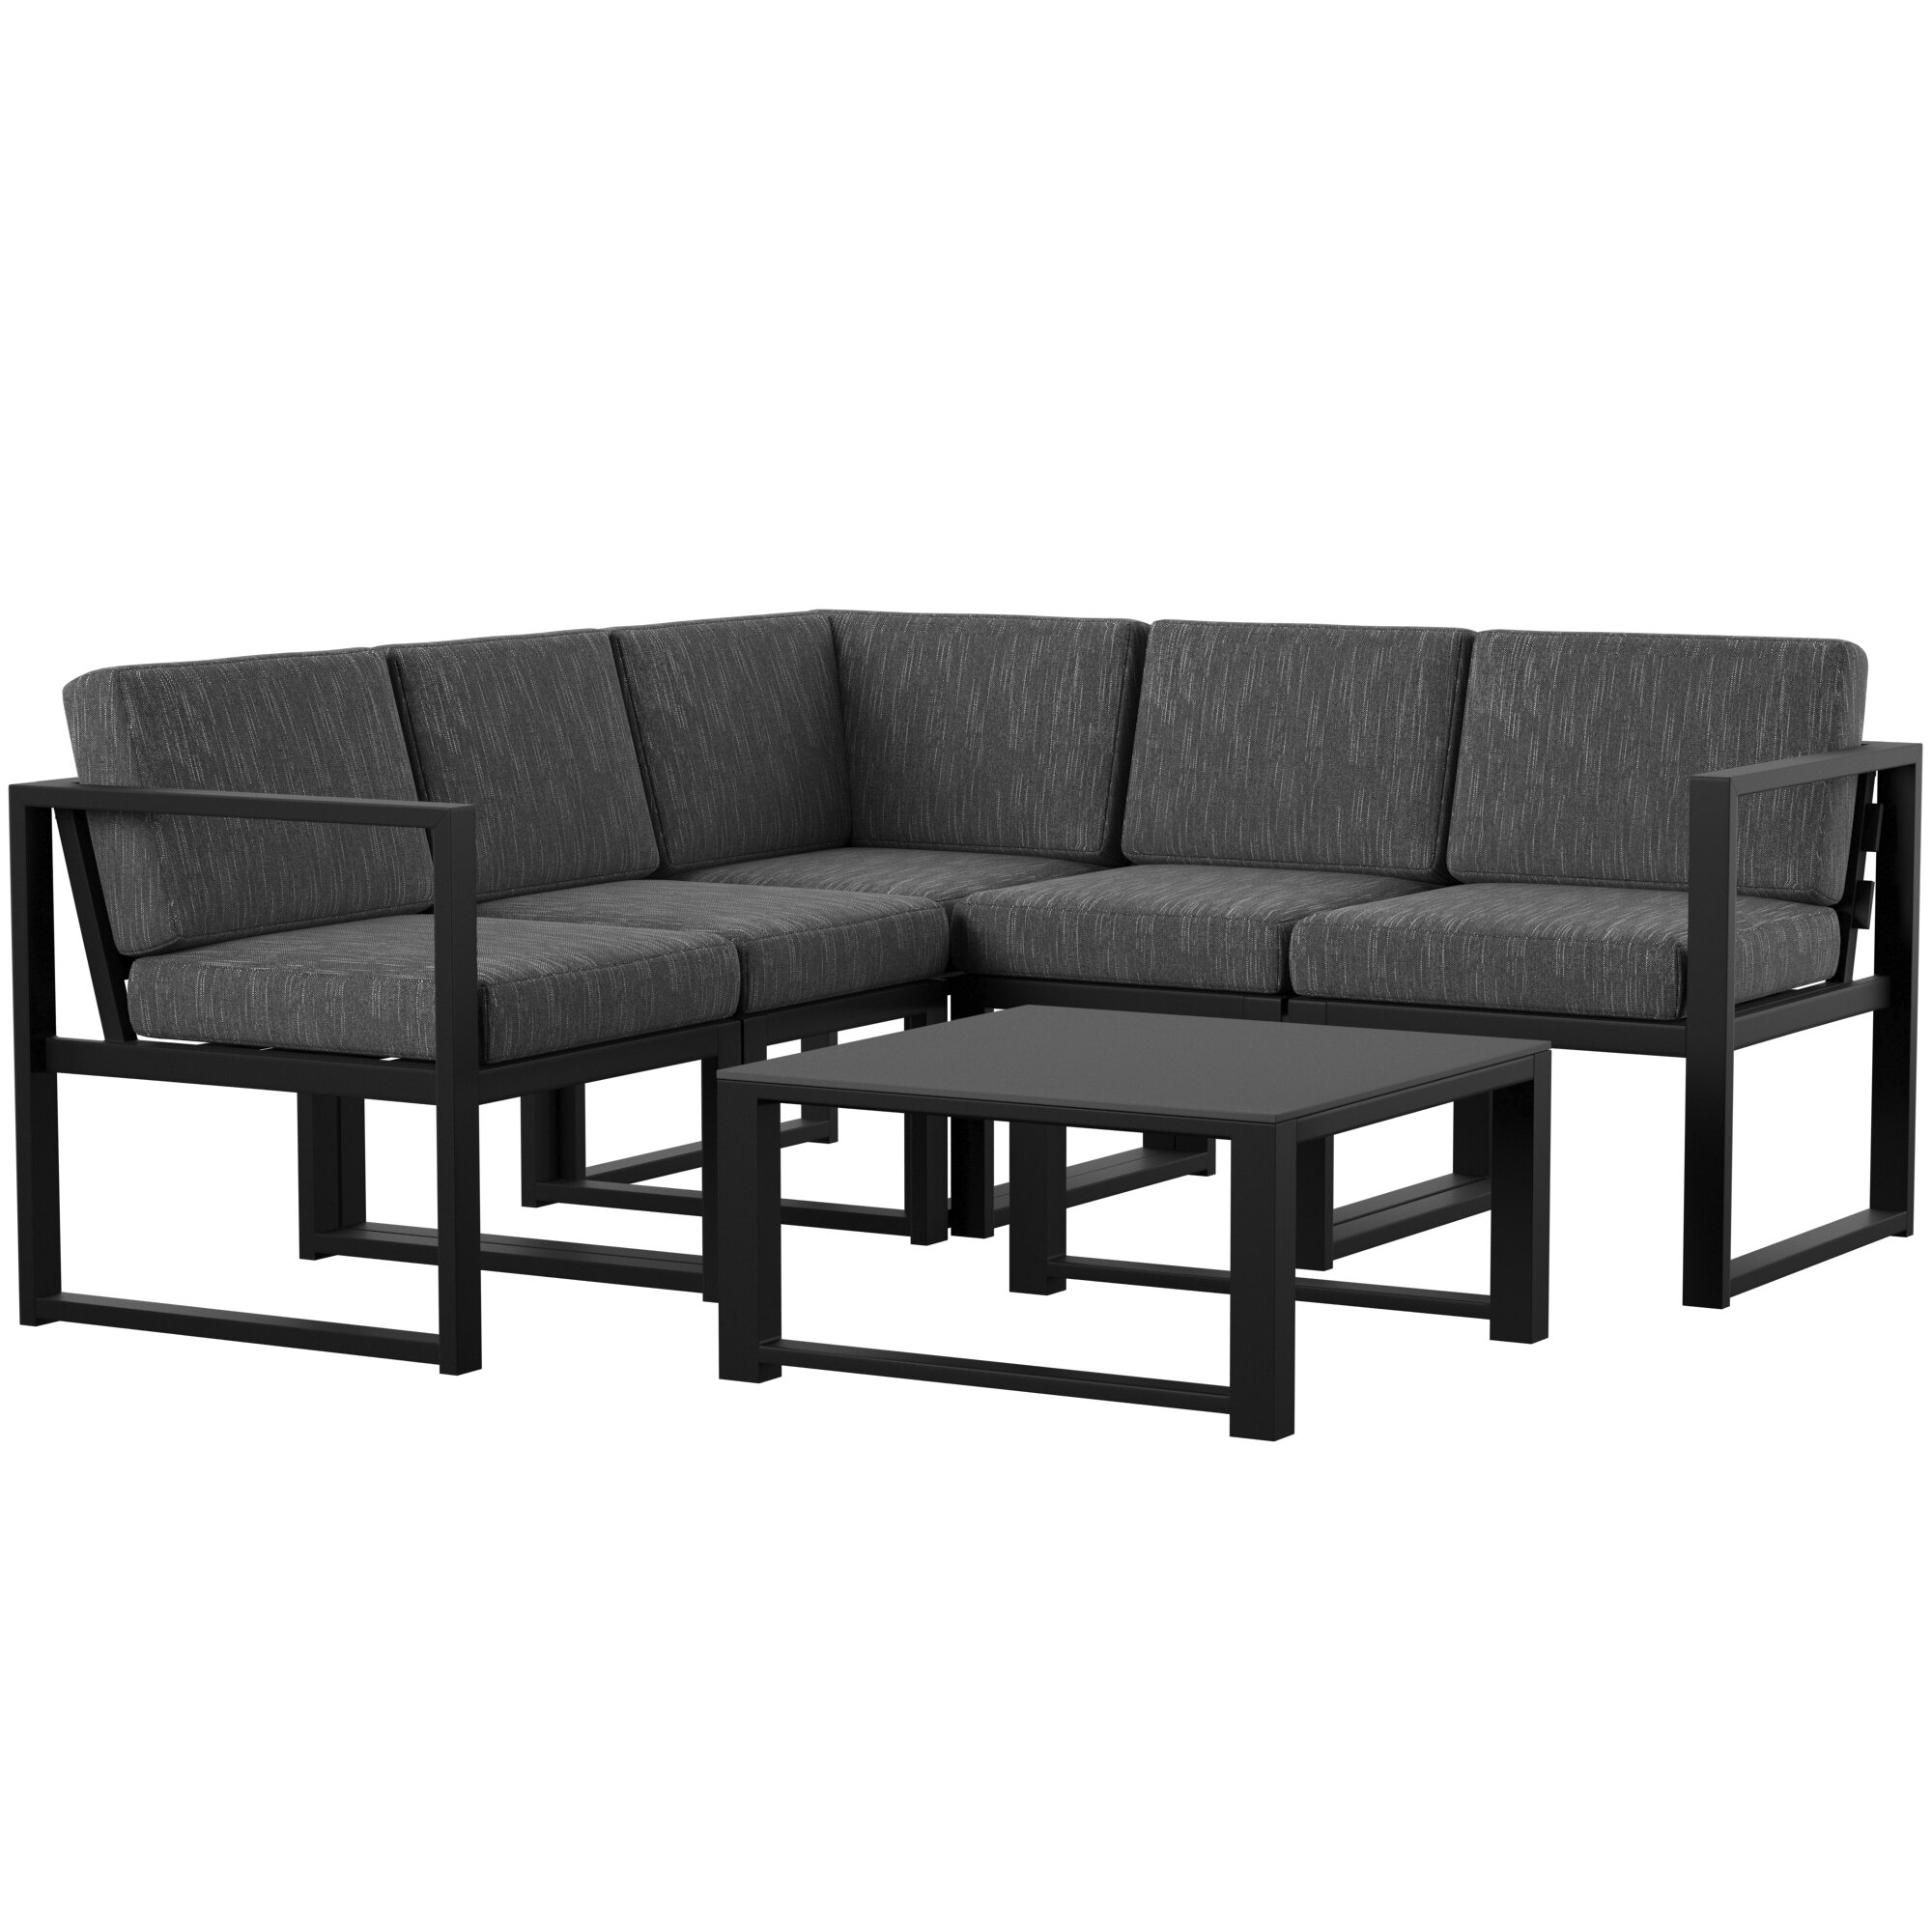 Mirando 6 Piece Sectional Seating Group with Cushions & Reviews ...